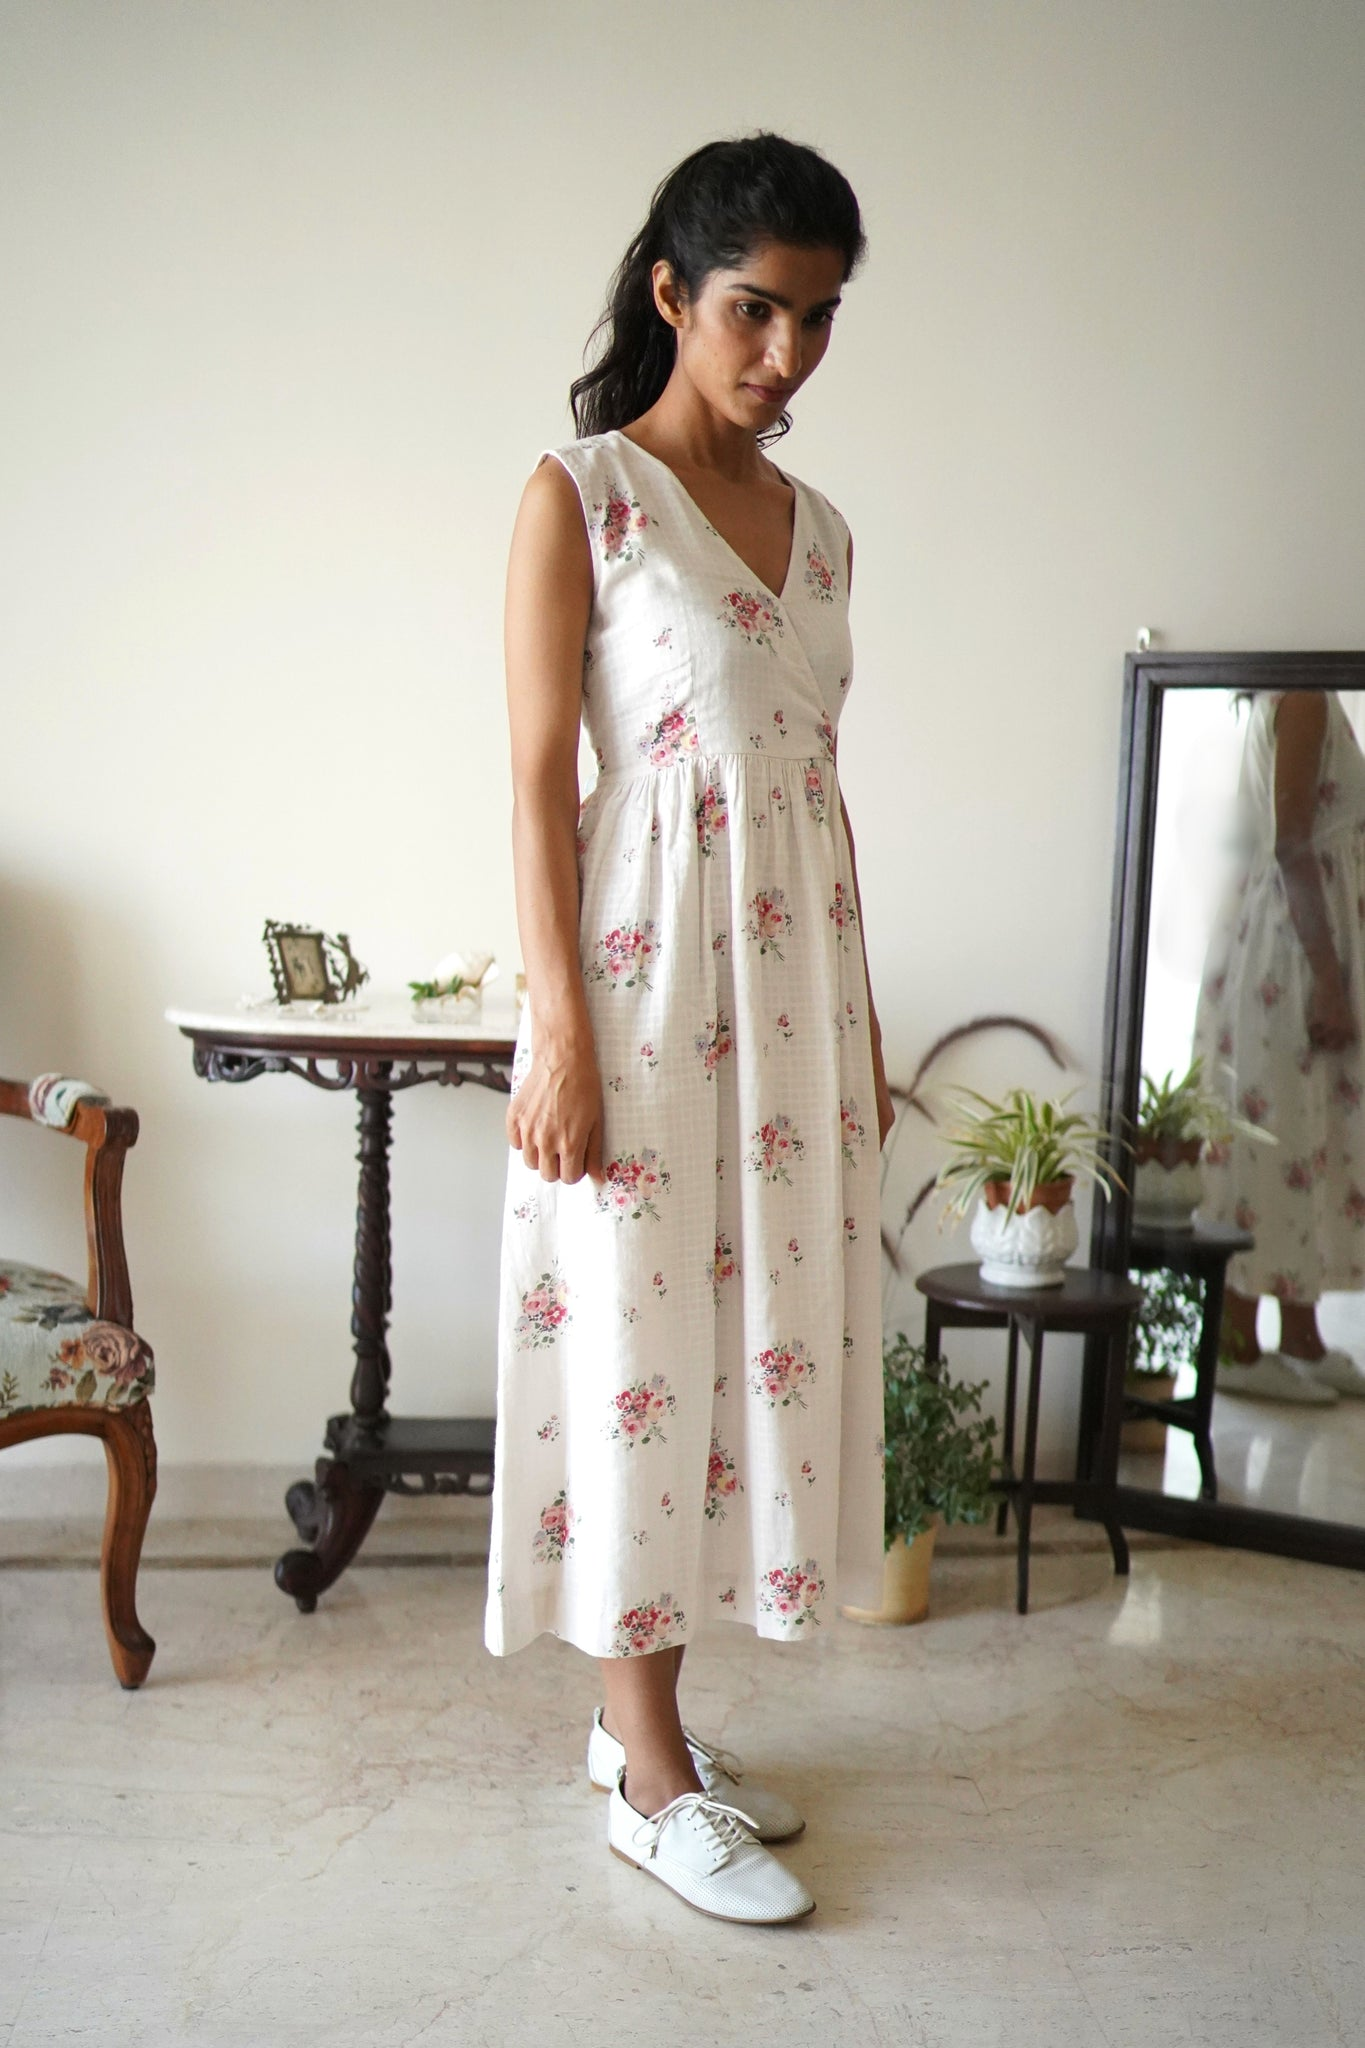 Eden Dress in vintage Floral